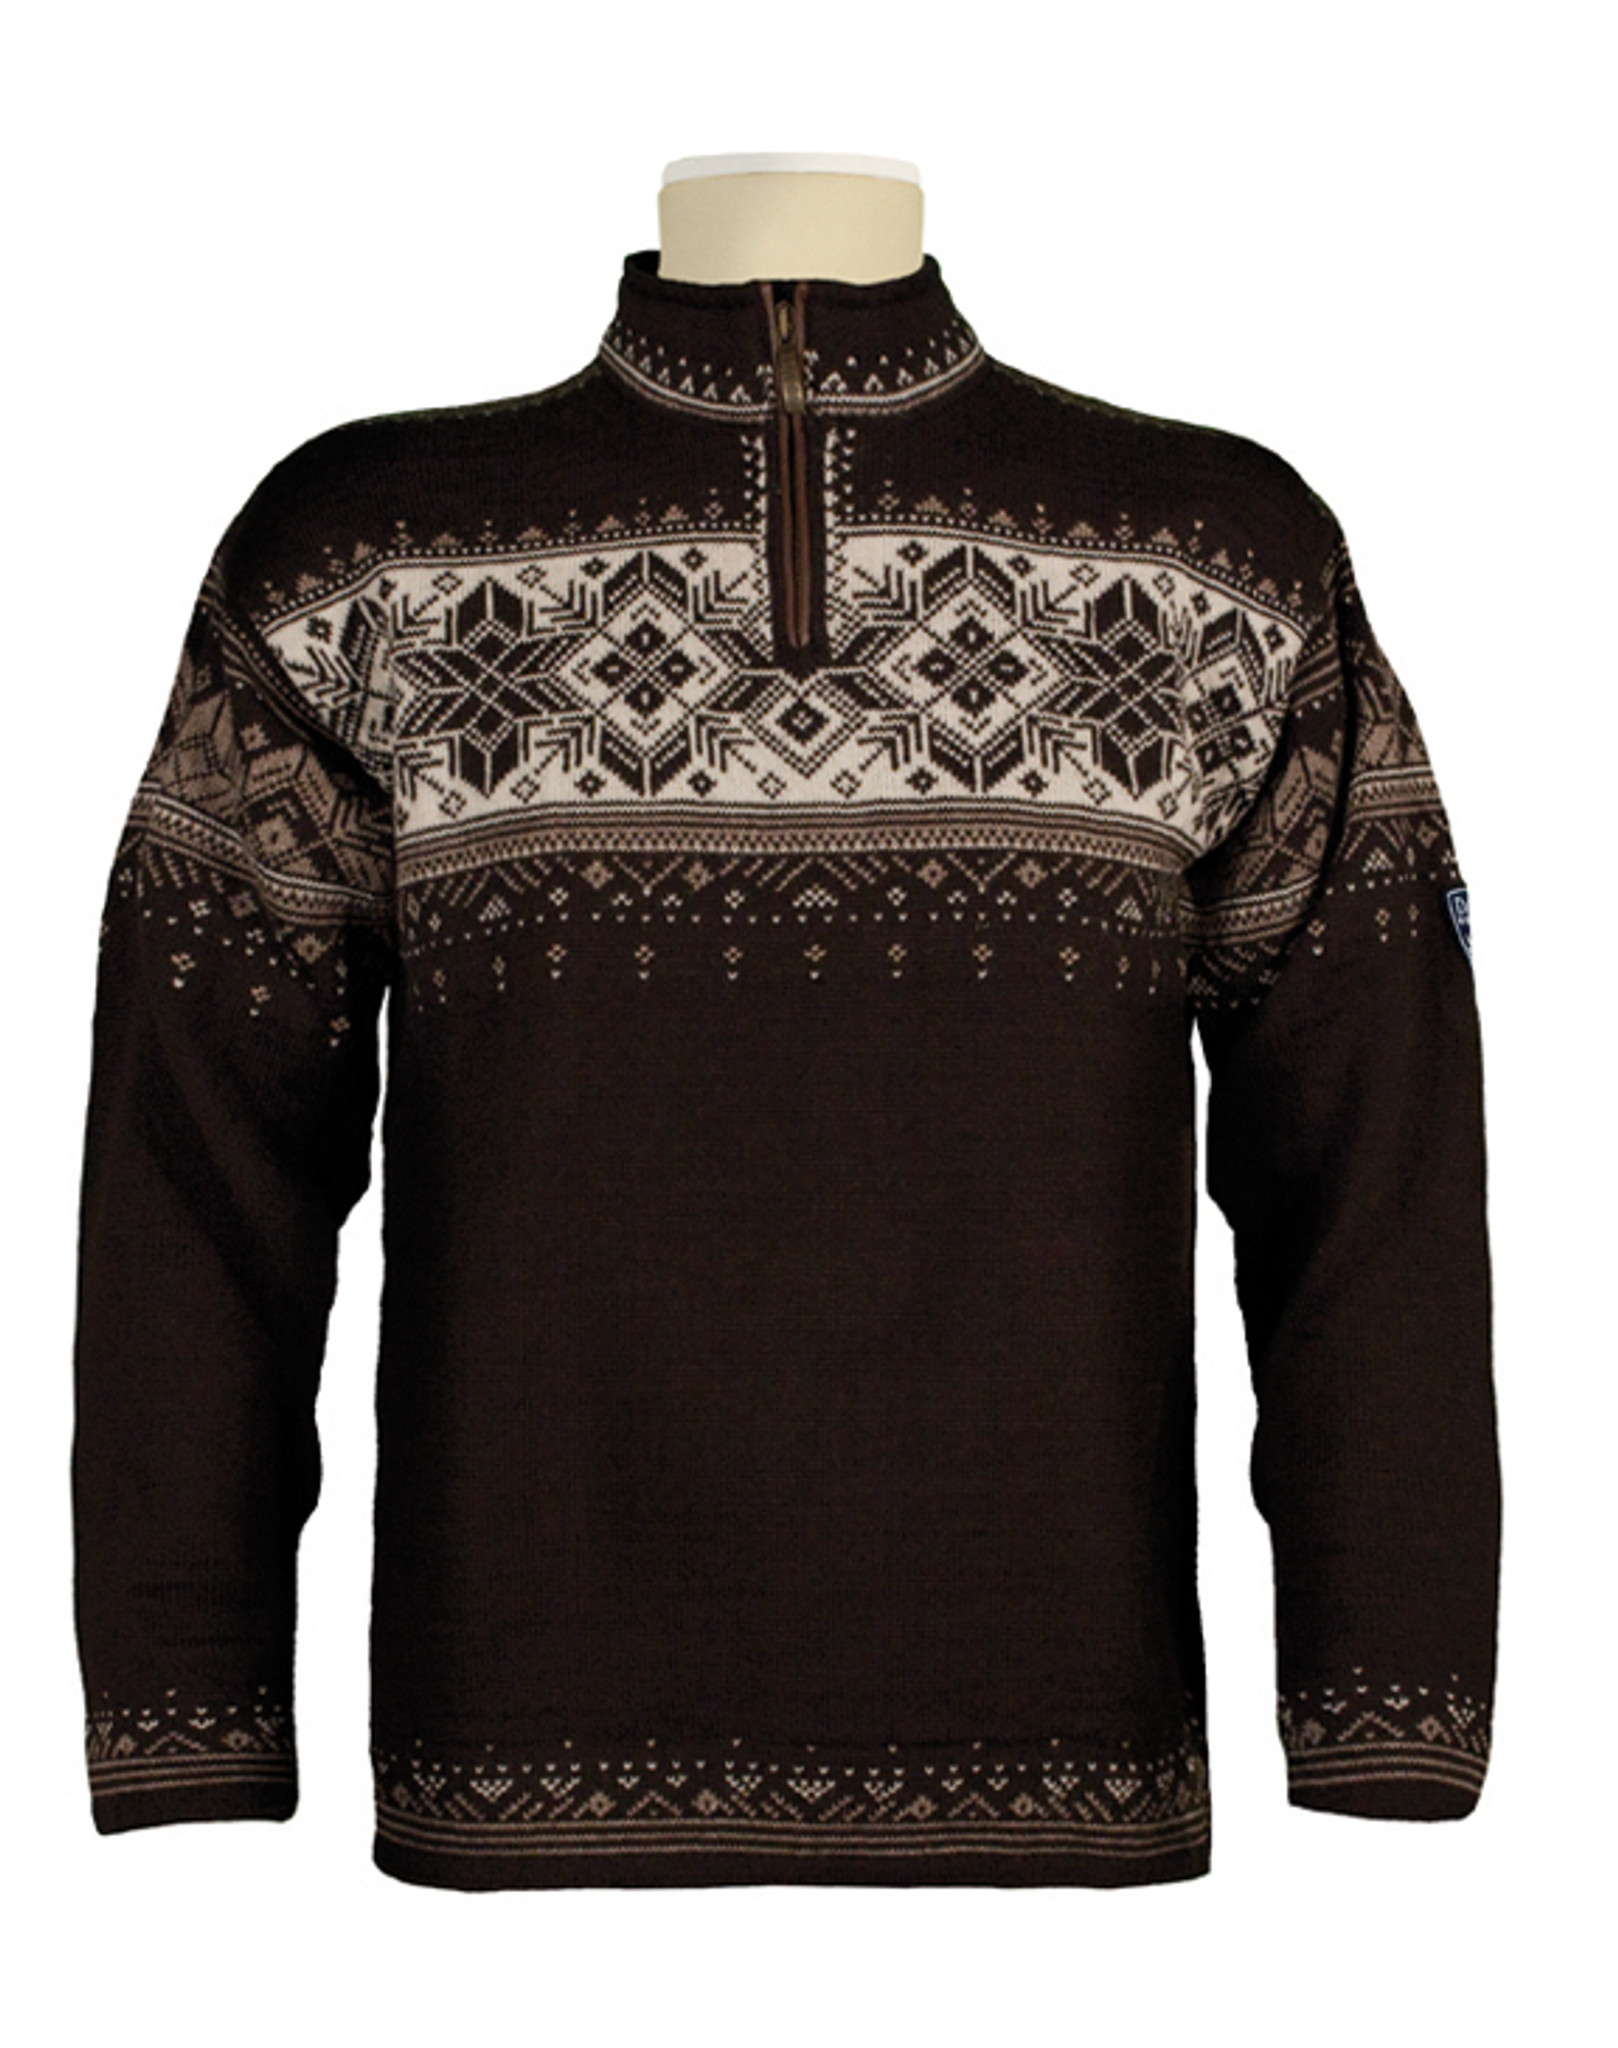 Dale of Norway, Blyfjell Sweater, Unisex, in Coffee/Mountainstone/Off White  Click to enlarge ...